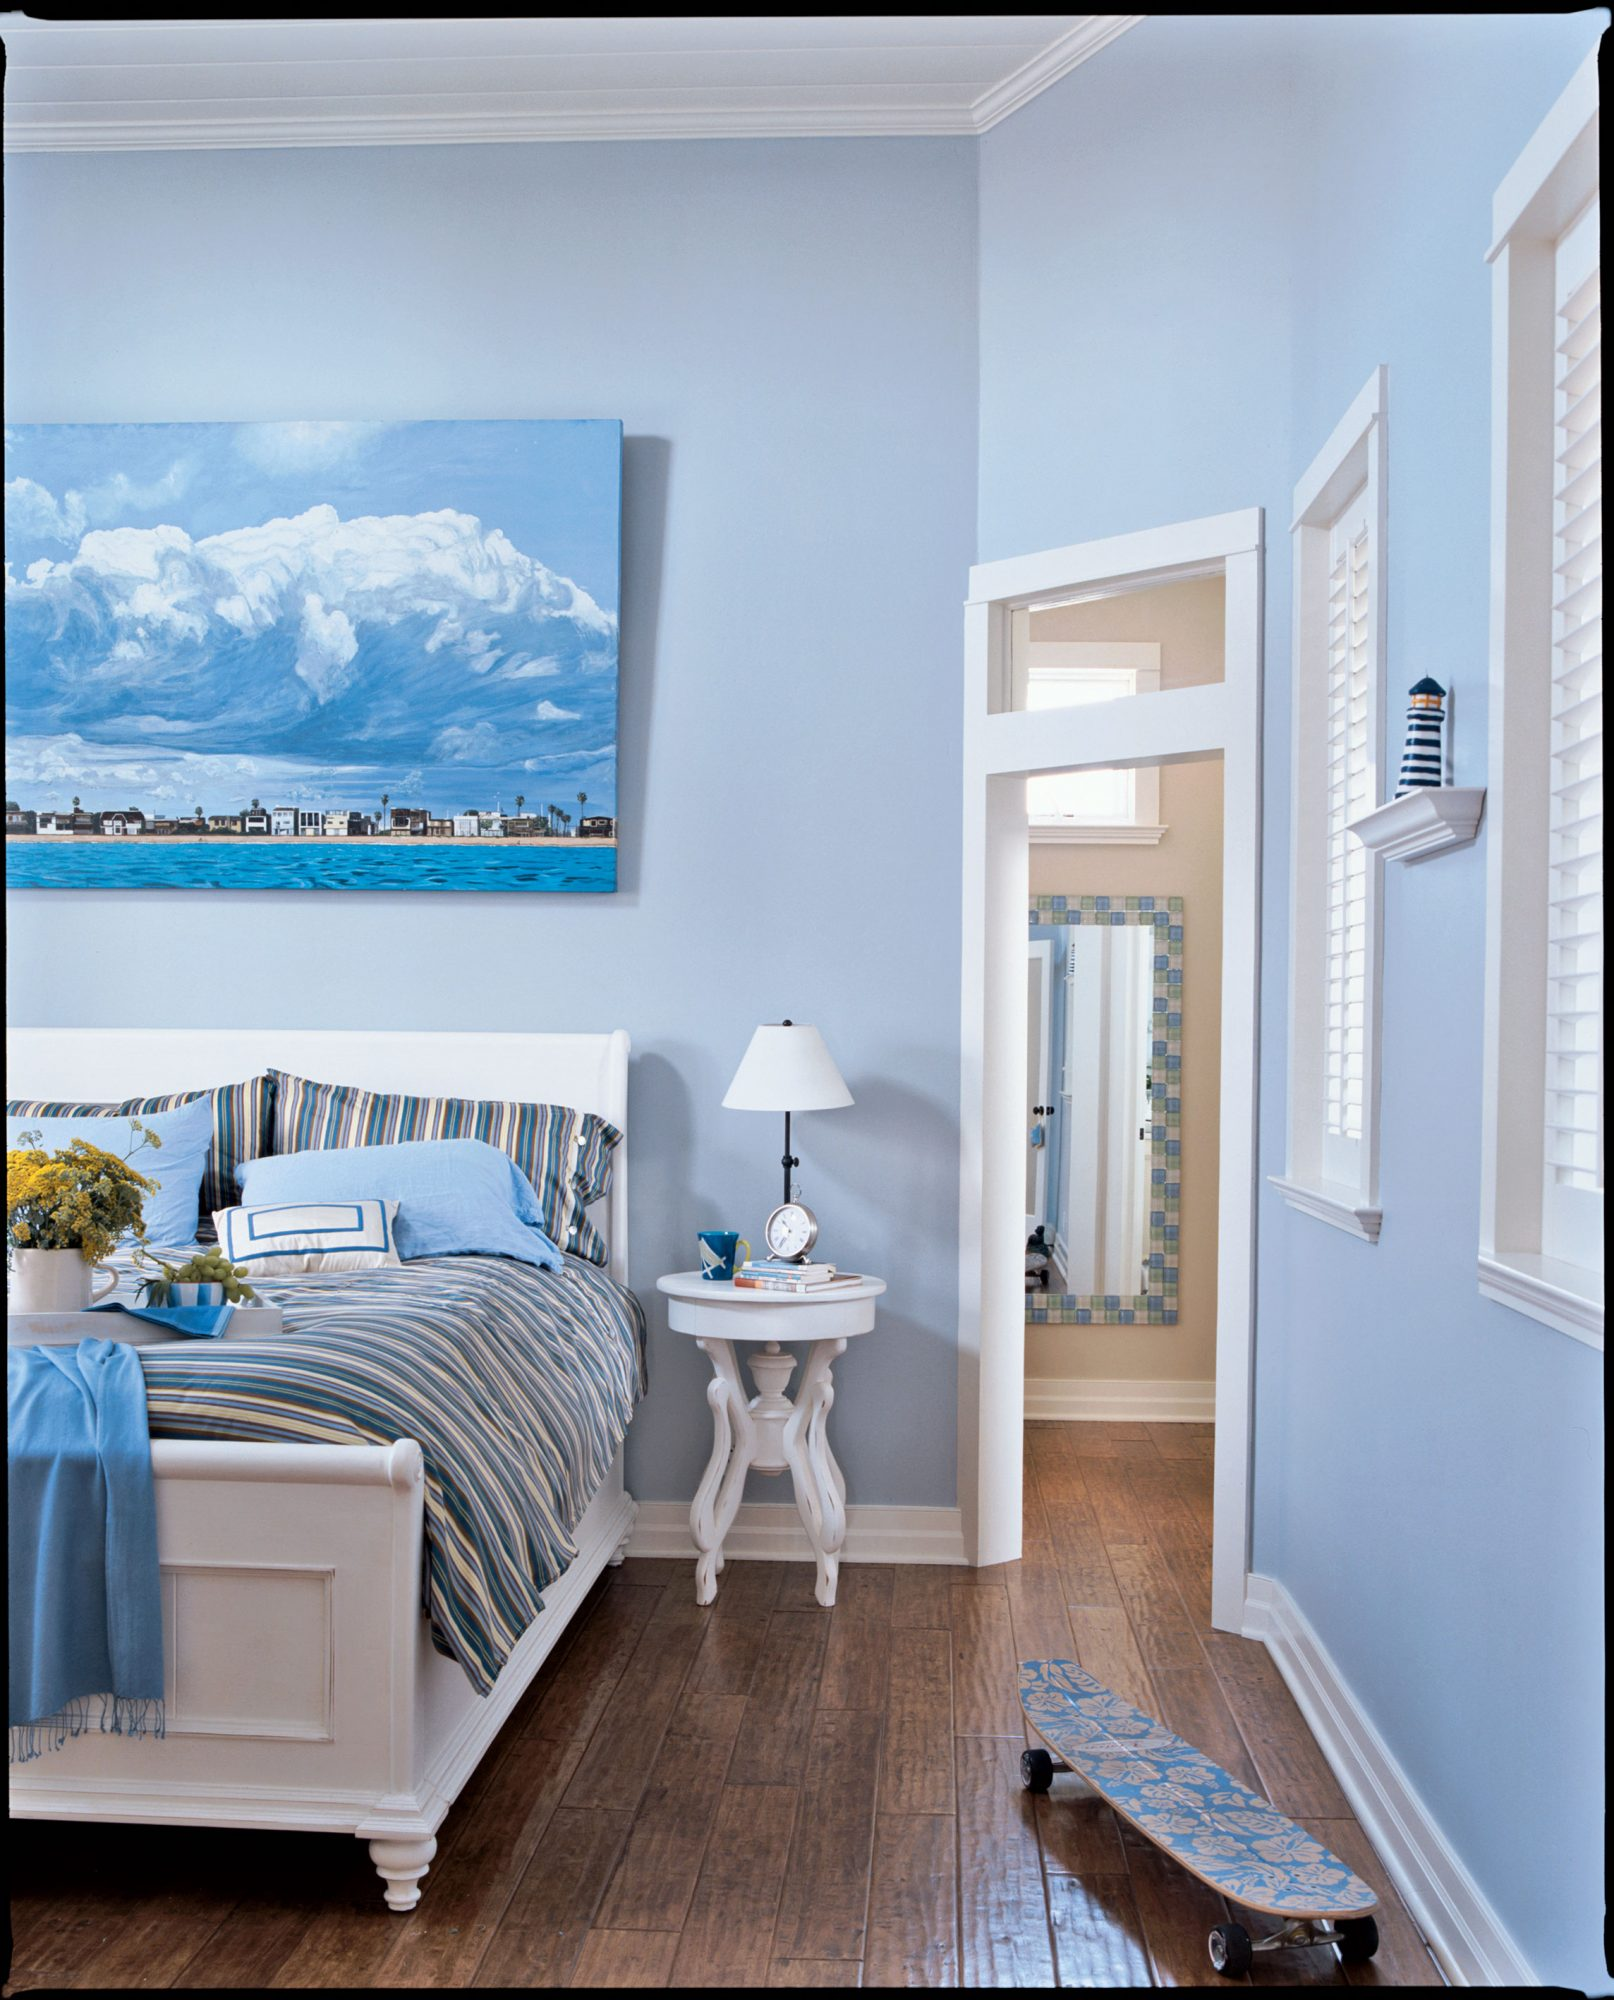 """When the guests go home, the homeowners retire to their soothing blue master suite. """"It's like we're waking up in the clouds every morning,"""" they say."""